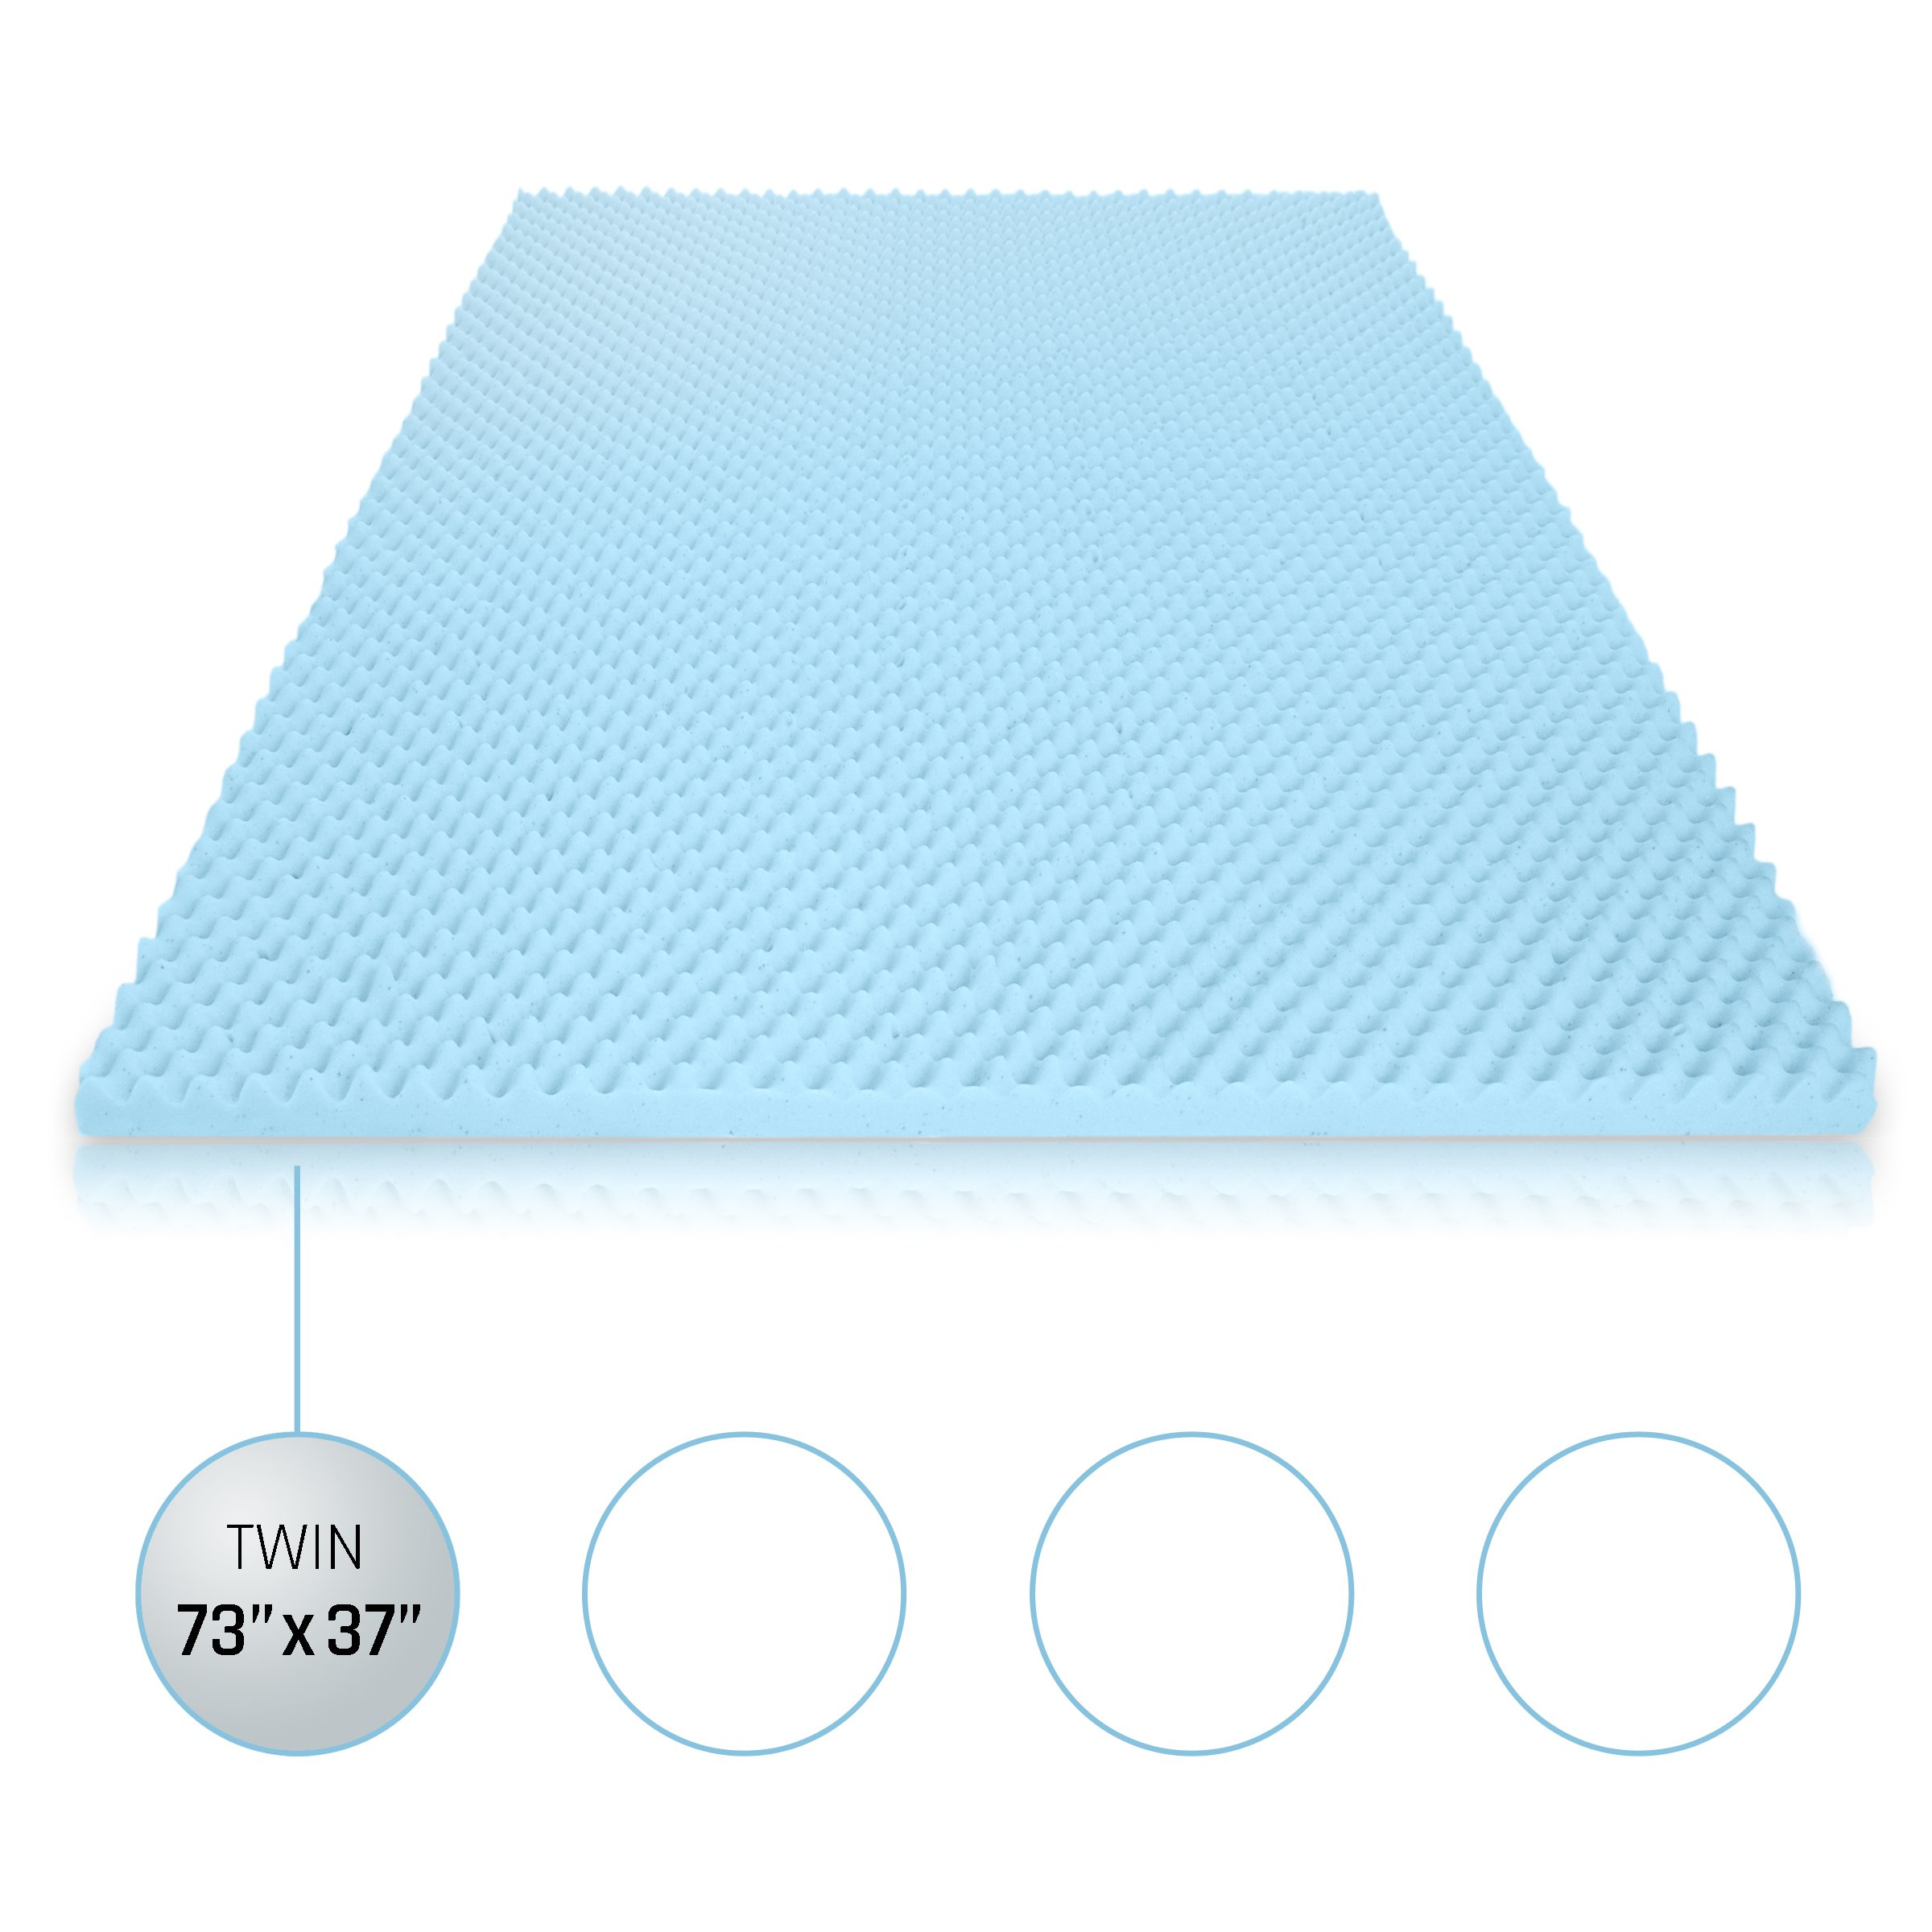 Milliard 2in. Egg Crate Gel Memory Foam Mattress Topper - Twin, Mattress Pad Provides Great Pressure Relief, Gel Infusion Contributes to a Cooler Night Sleep (Twin)